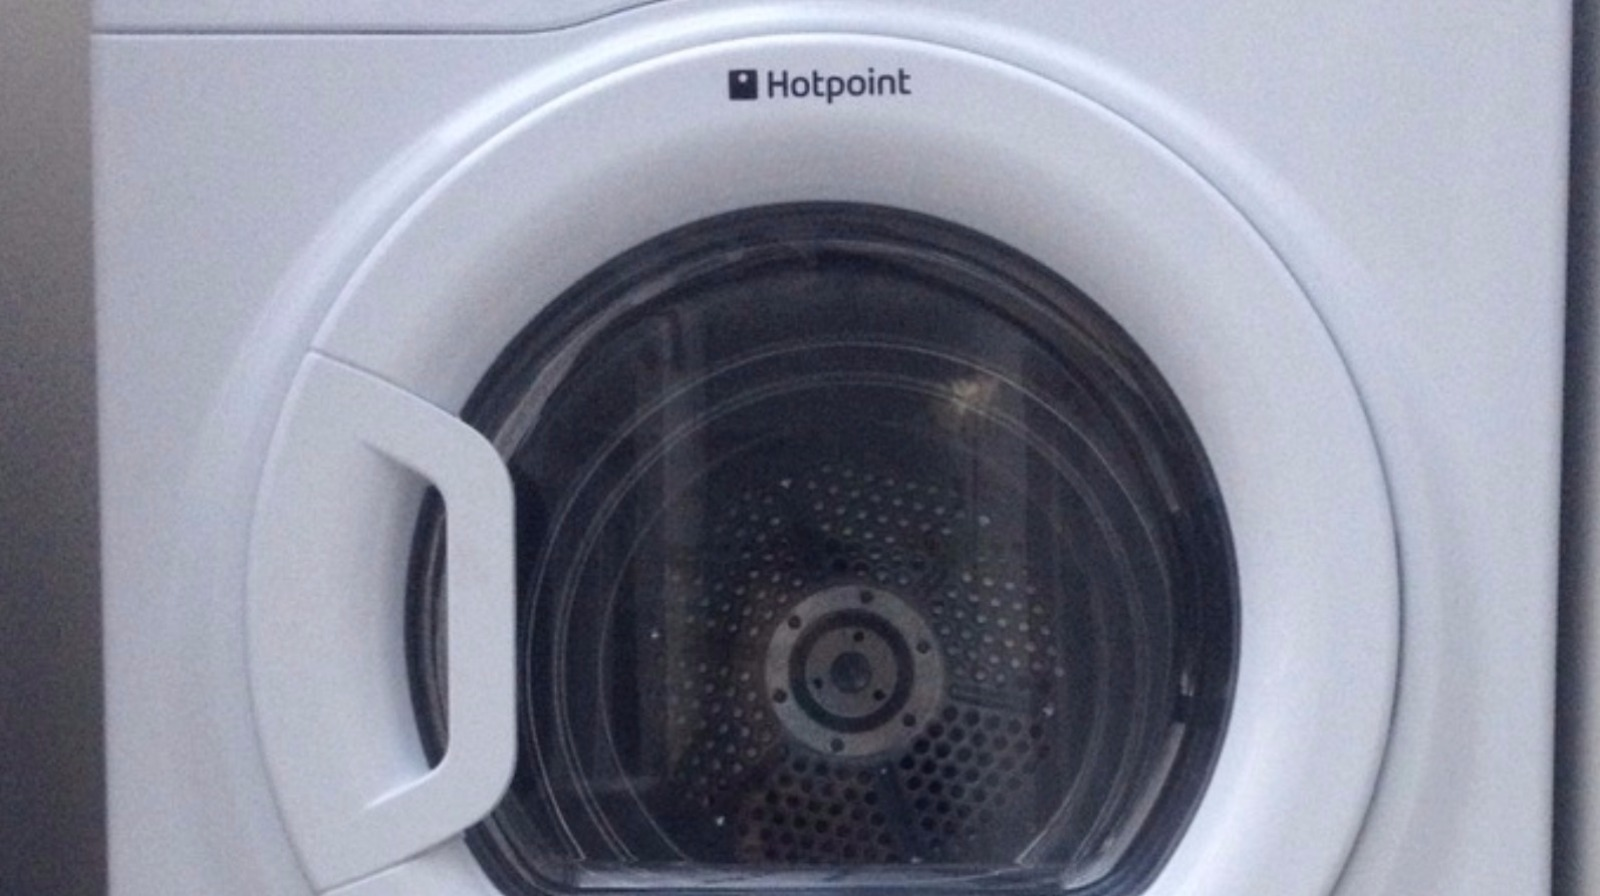 hight resolution of hotpoint dryer fire risk which models are affected